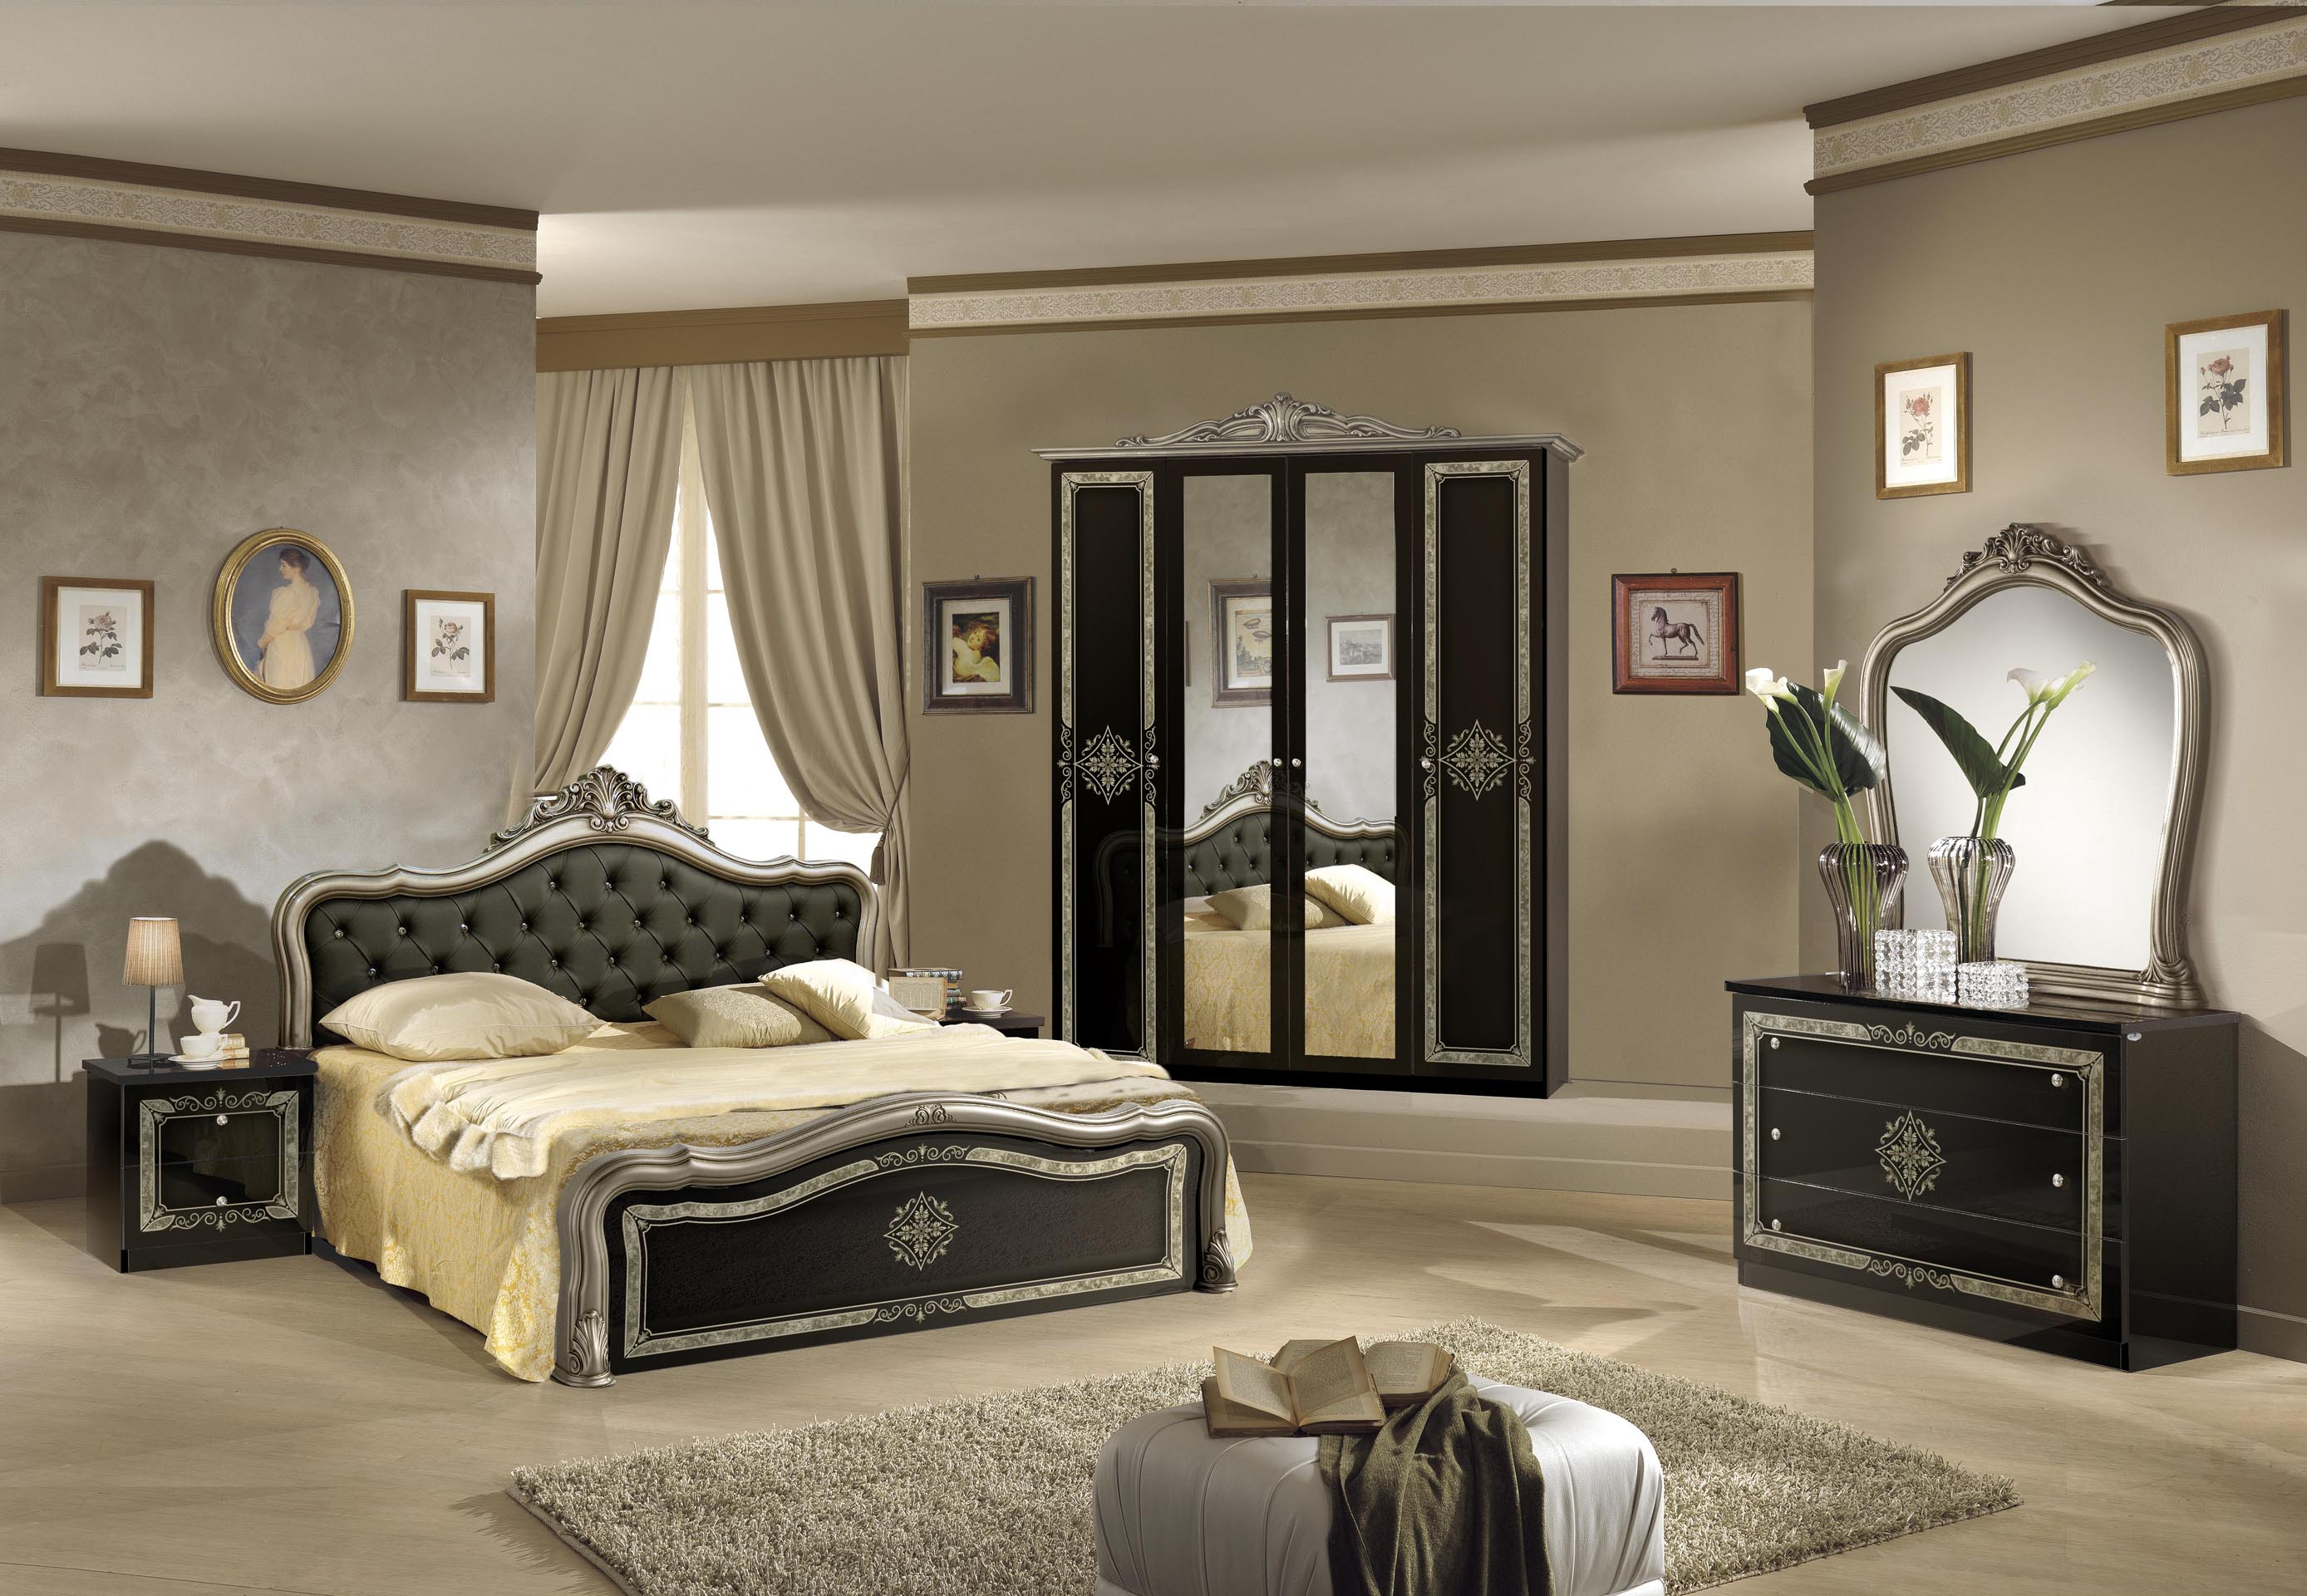 kommode lucy mit spiegel schwarz gold f r schlafzimmer. Black Bedroom Furniture Sets. Home Design Ideas